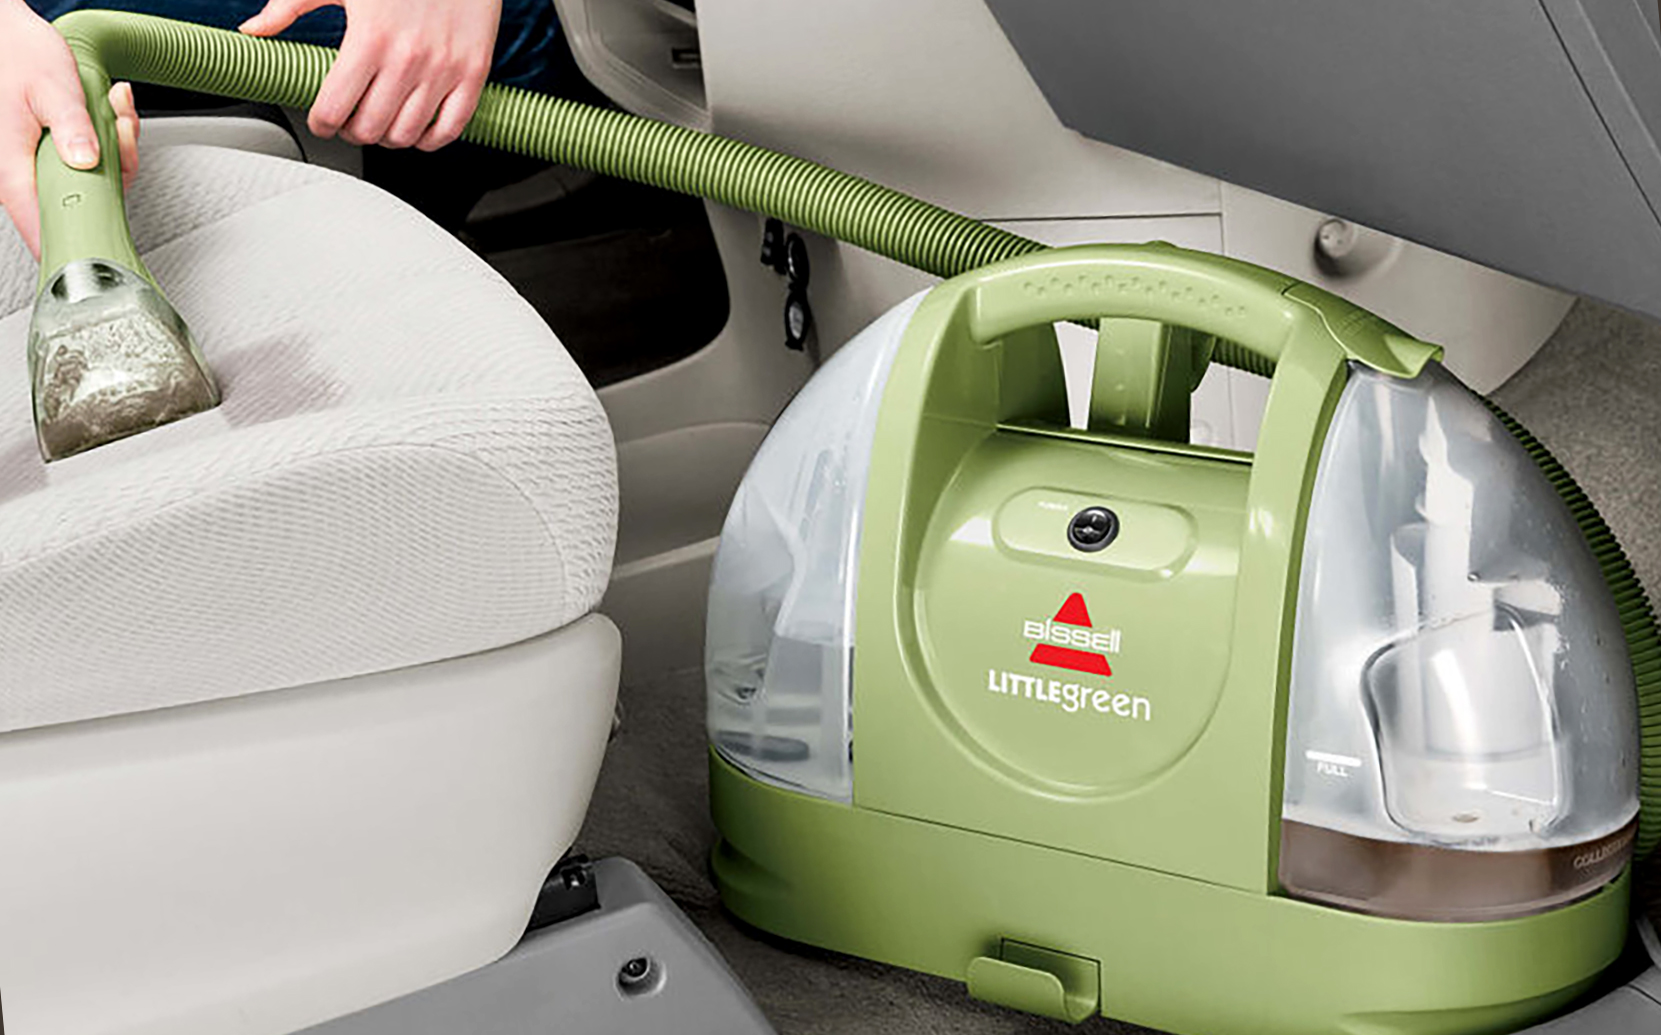 9 Best Portable Carpet Cleaners Based on Thousands of Reviews - Better Homes & Gardens